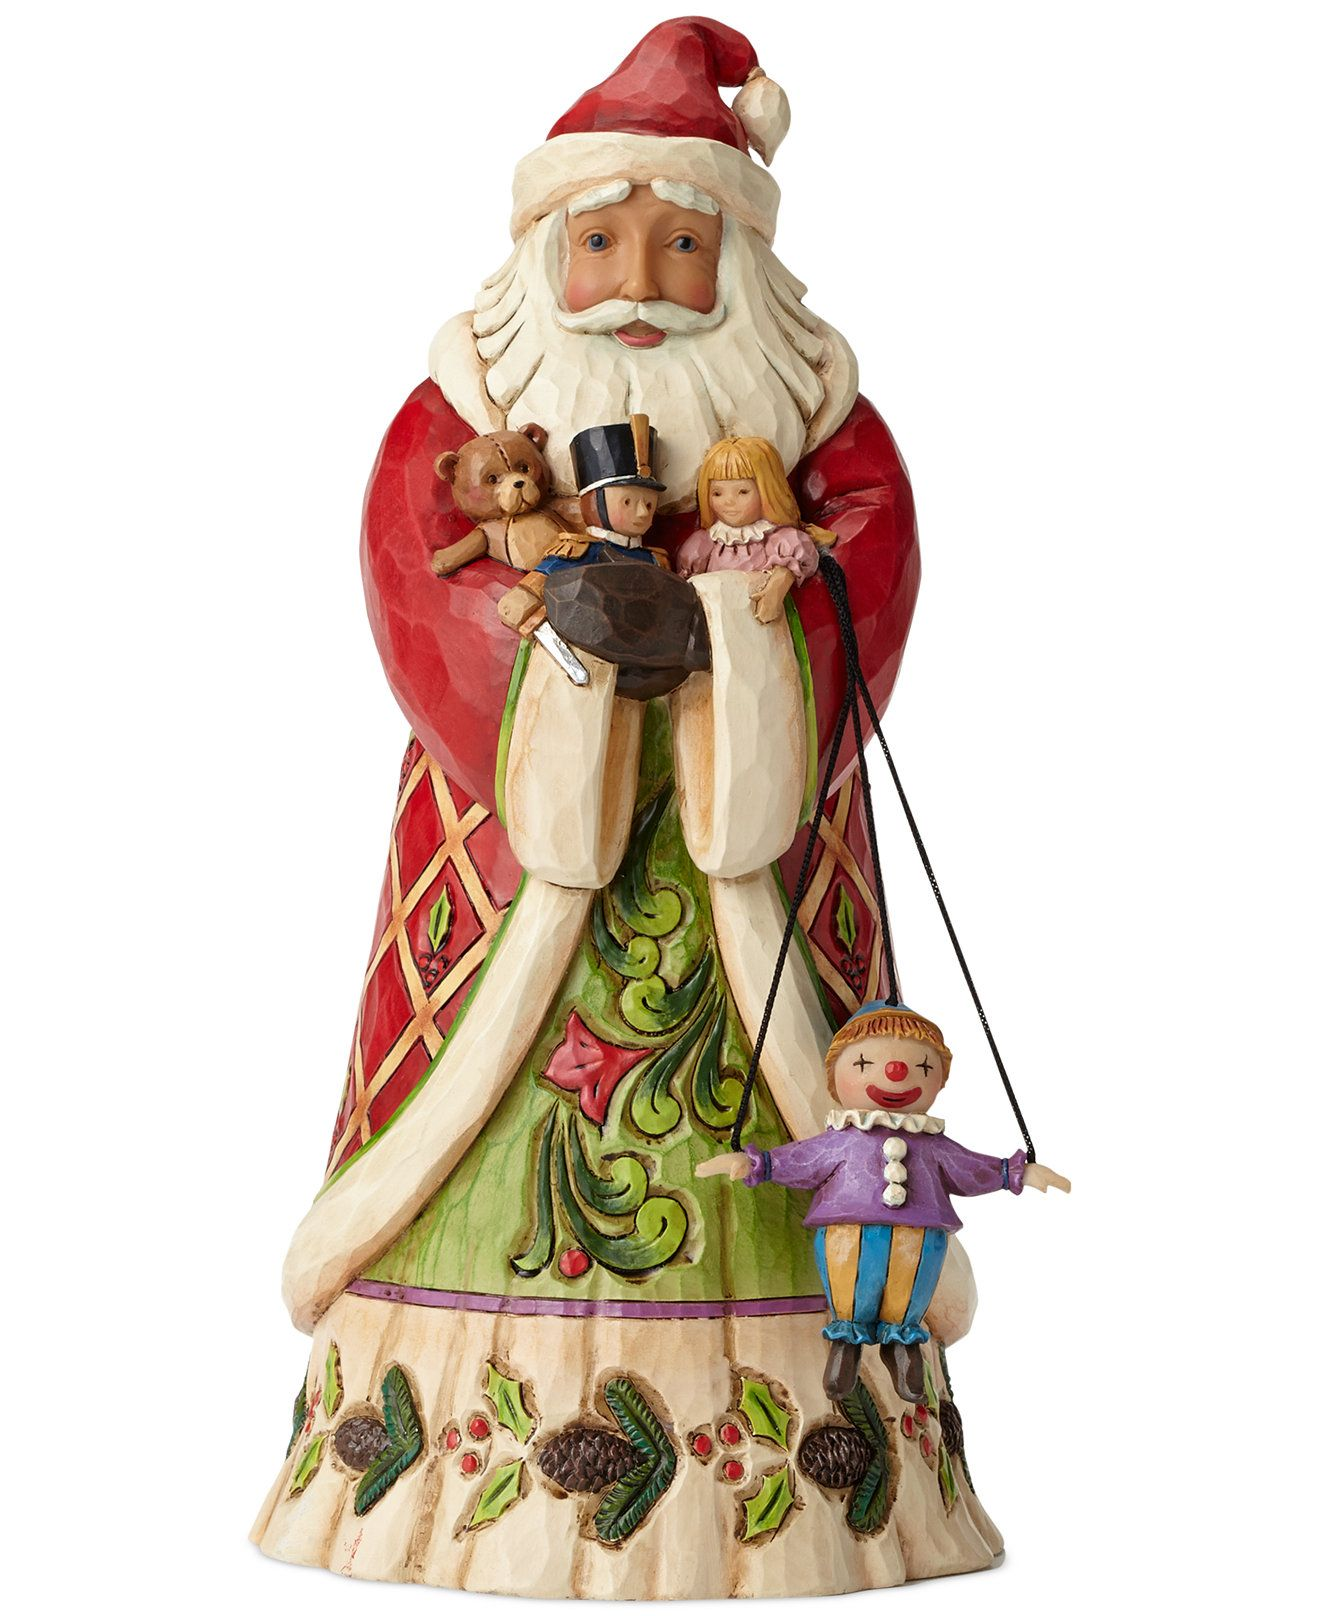 Jim Shore Santa With Toys Collectible Figurine Christmas Decorations For The Home Macys